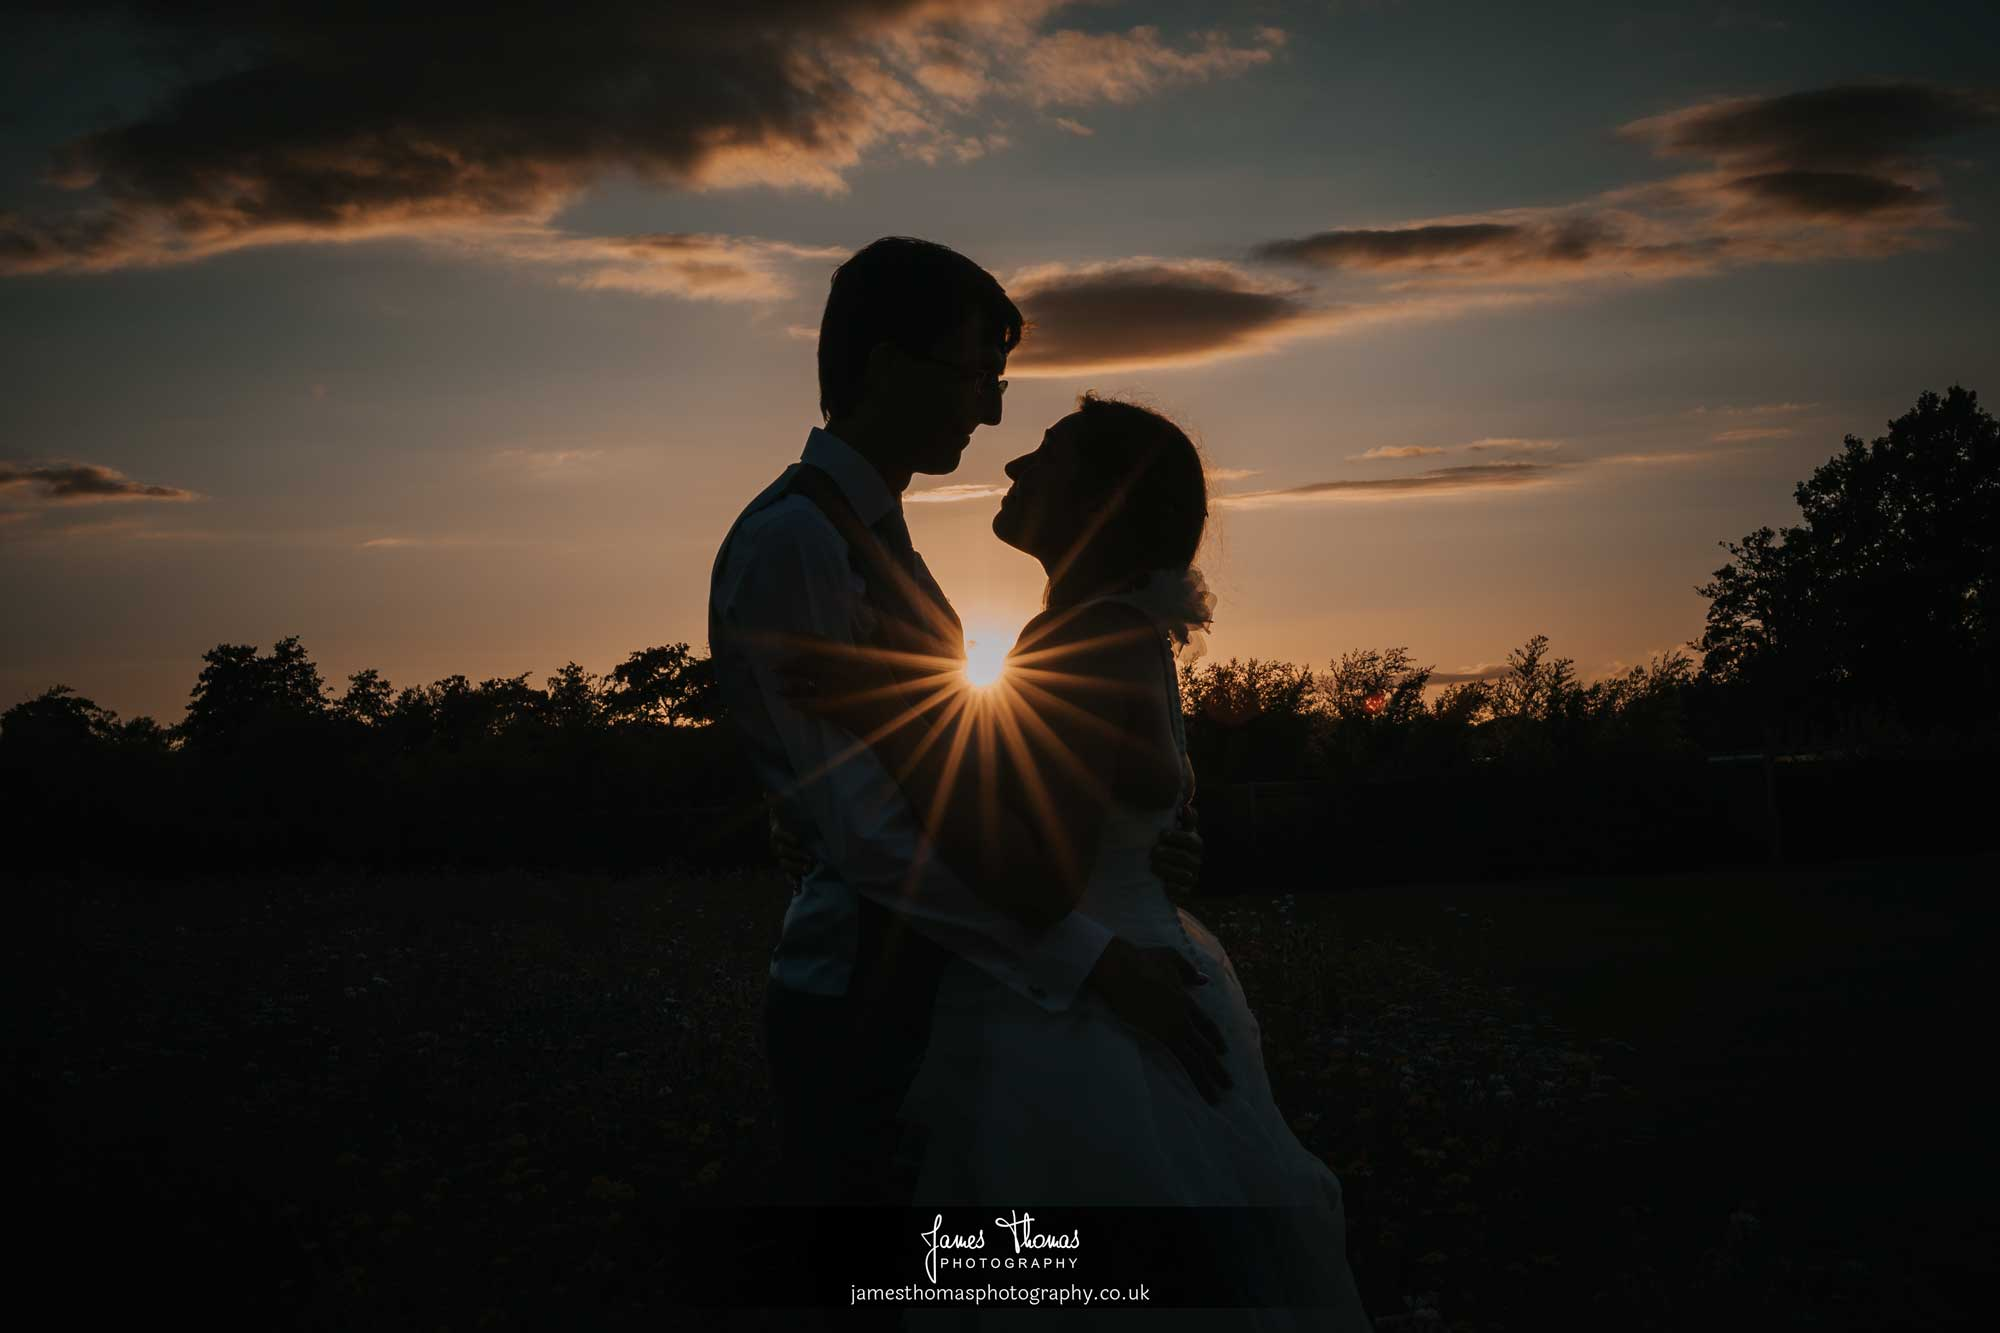 Silhouette of bride and groom with the sun star bursting between them